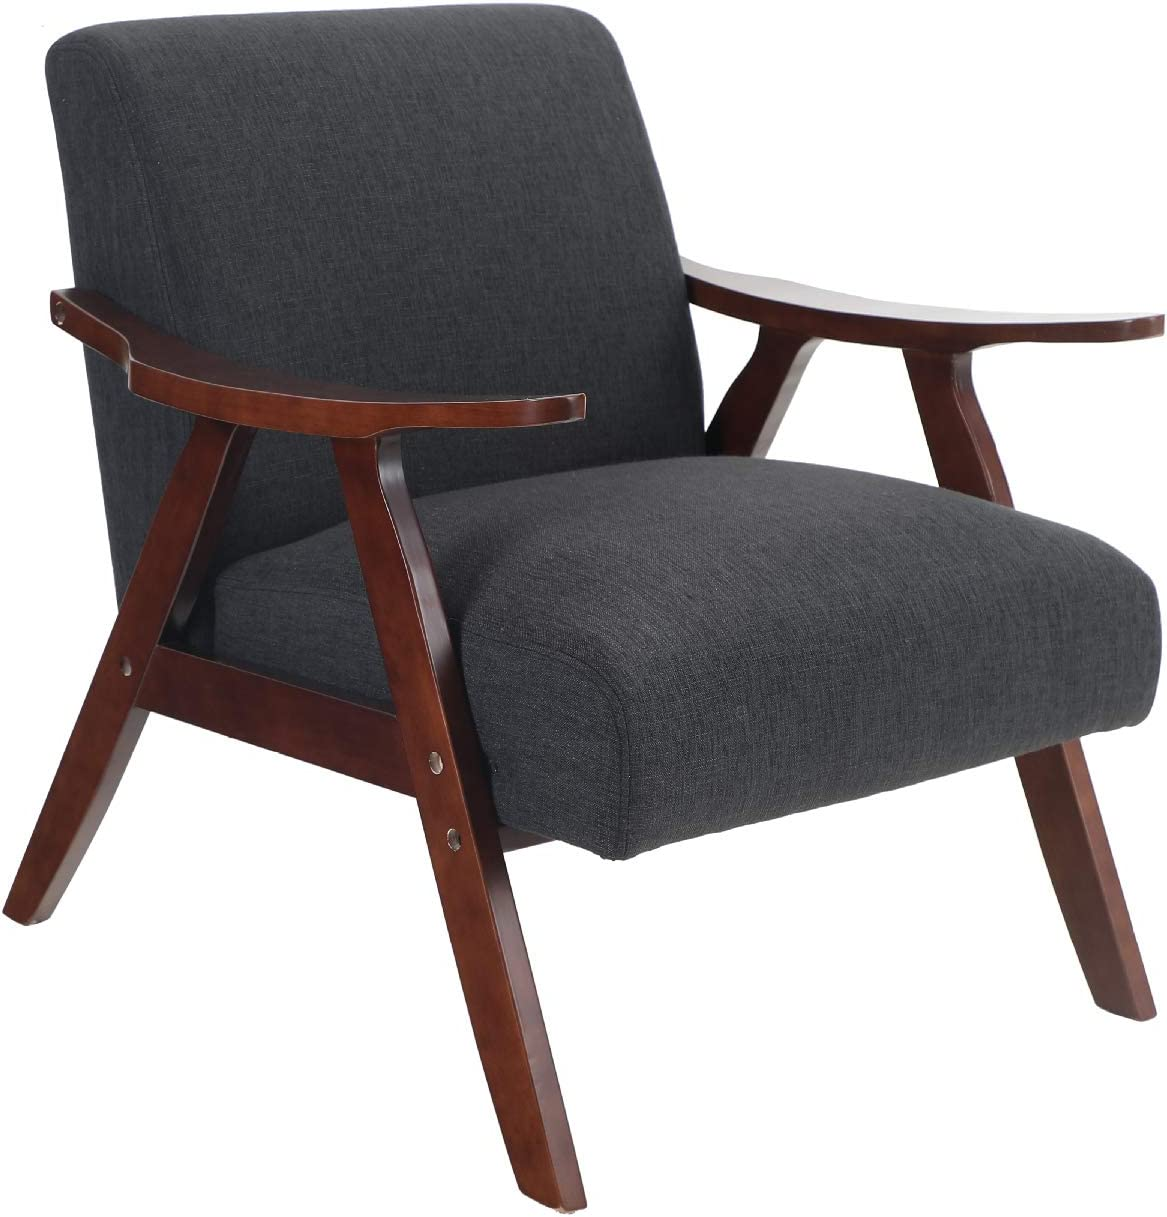 Sophia & William Accent Chair Mid-Century Living Room Chair Upholstered Padded Linen Armchair Modern Furniture with Solid Wood for Home Bedroom, Dark Grey